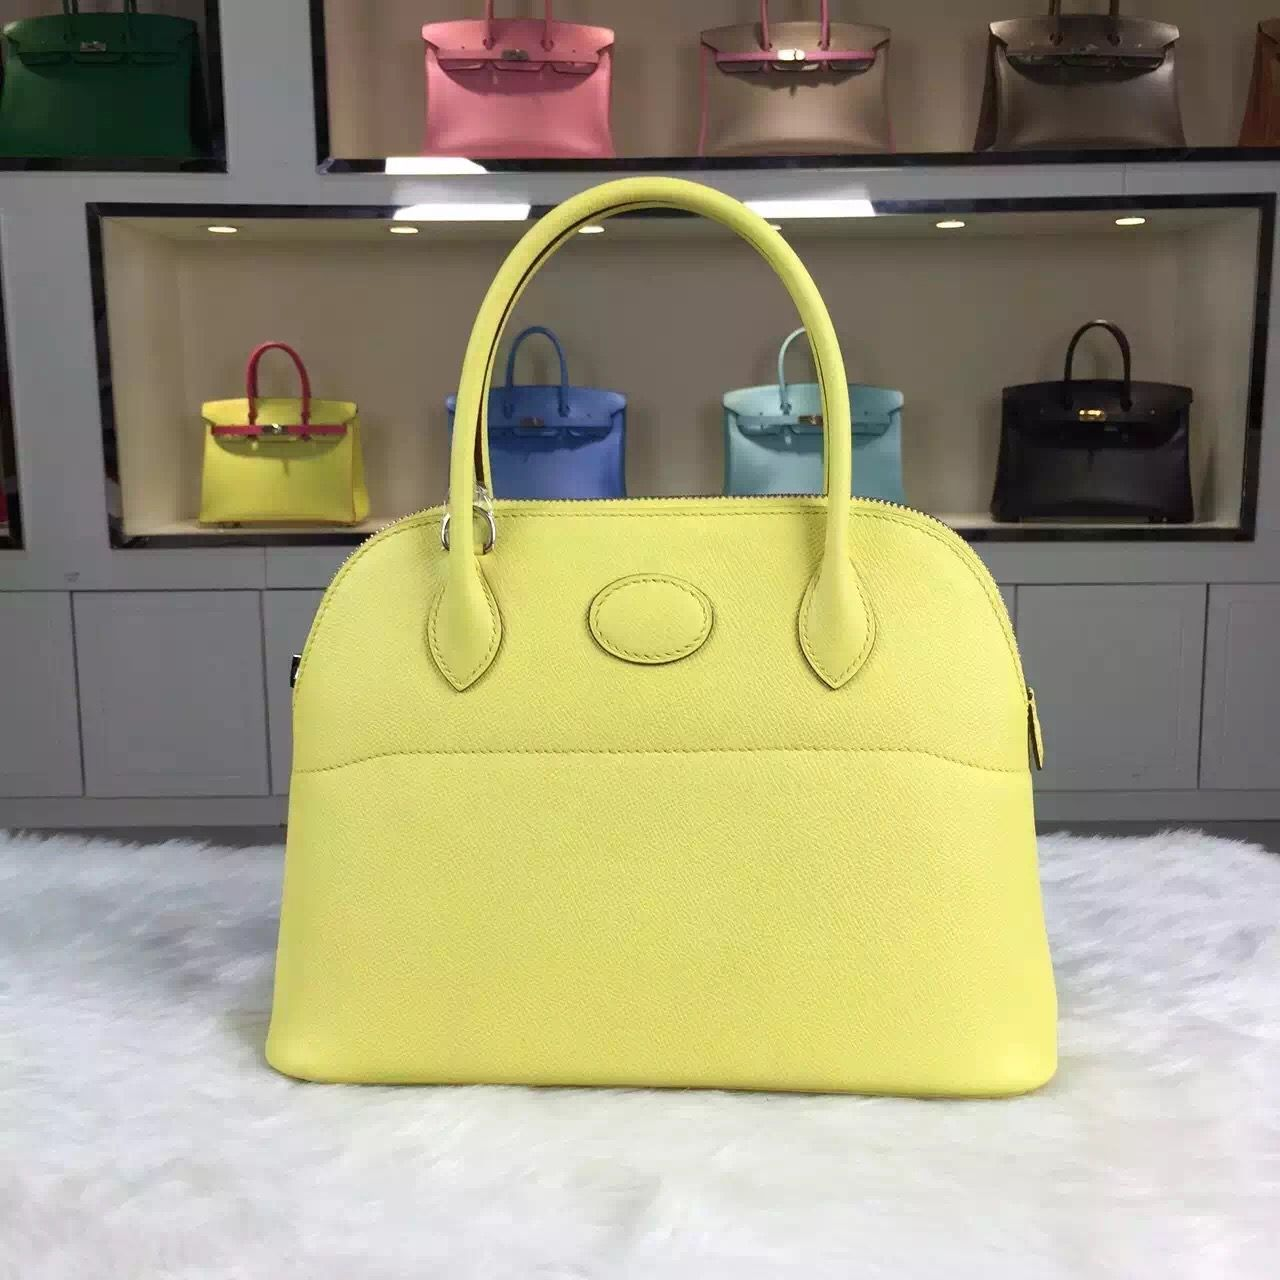 Brand: Hermes; Style: Bolide Bag; Material: epsom calfskin leather;Color